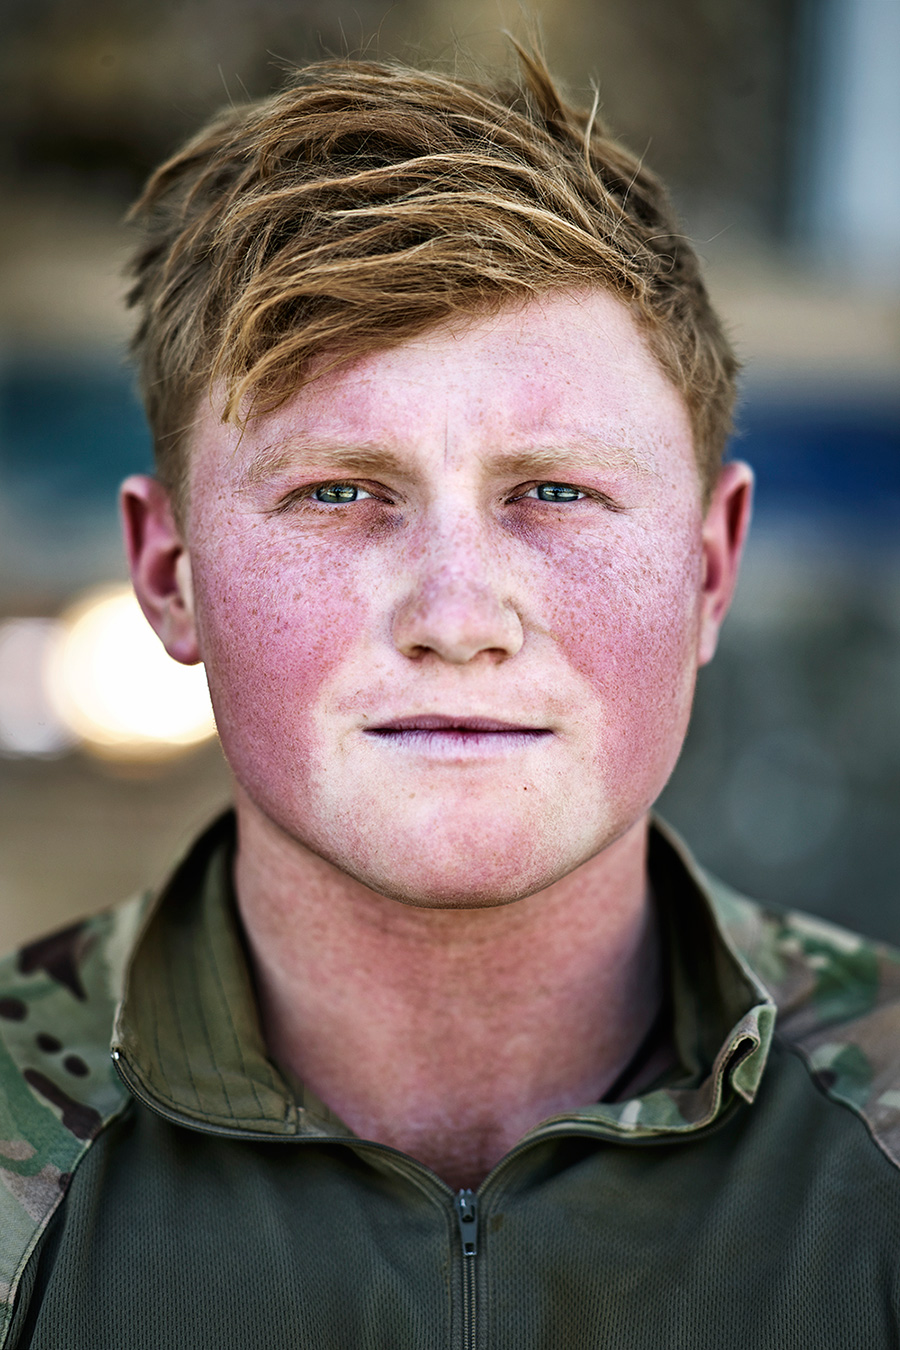 6 SHEET POSTER IN LIVERPOOL   This portrait was taken at Camp Bastion just after the troops had returned from one of the last patrols.